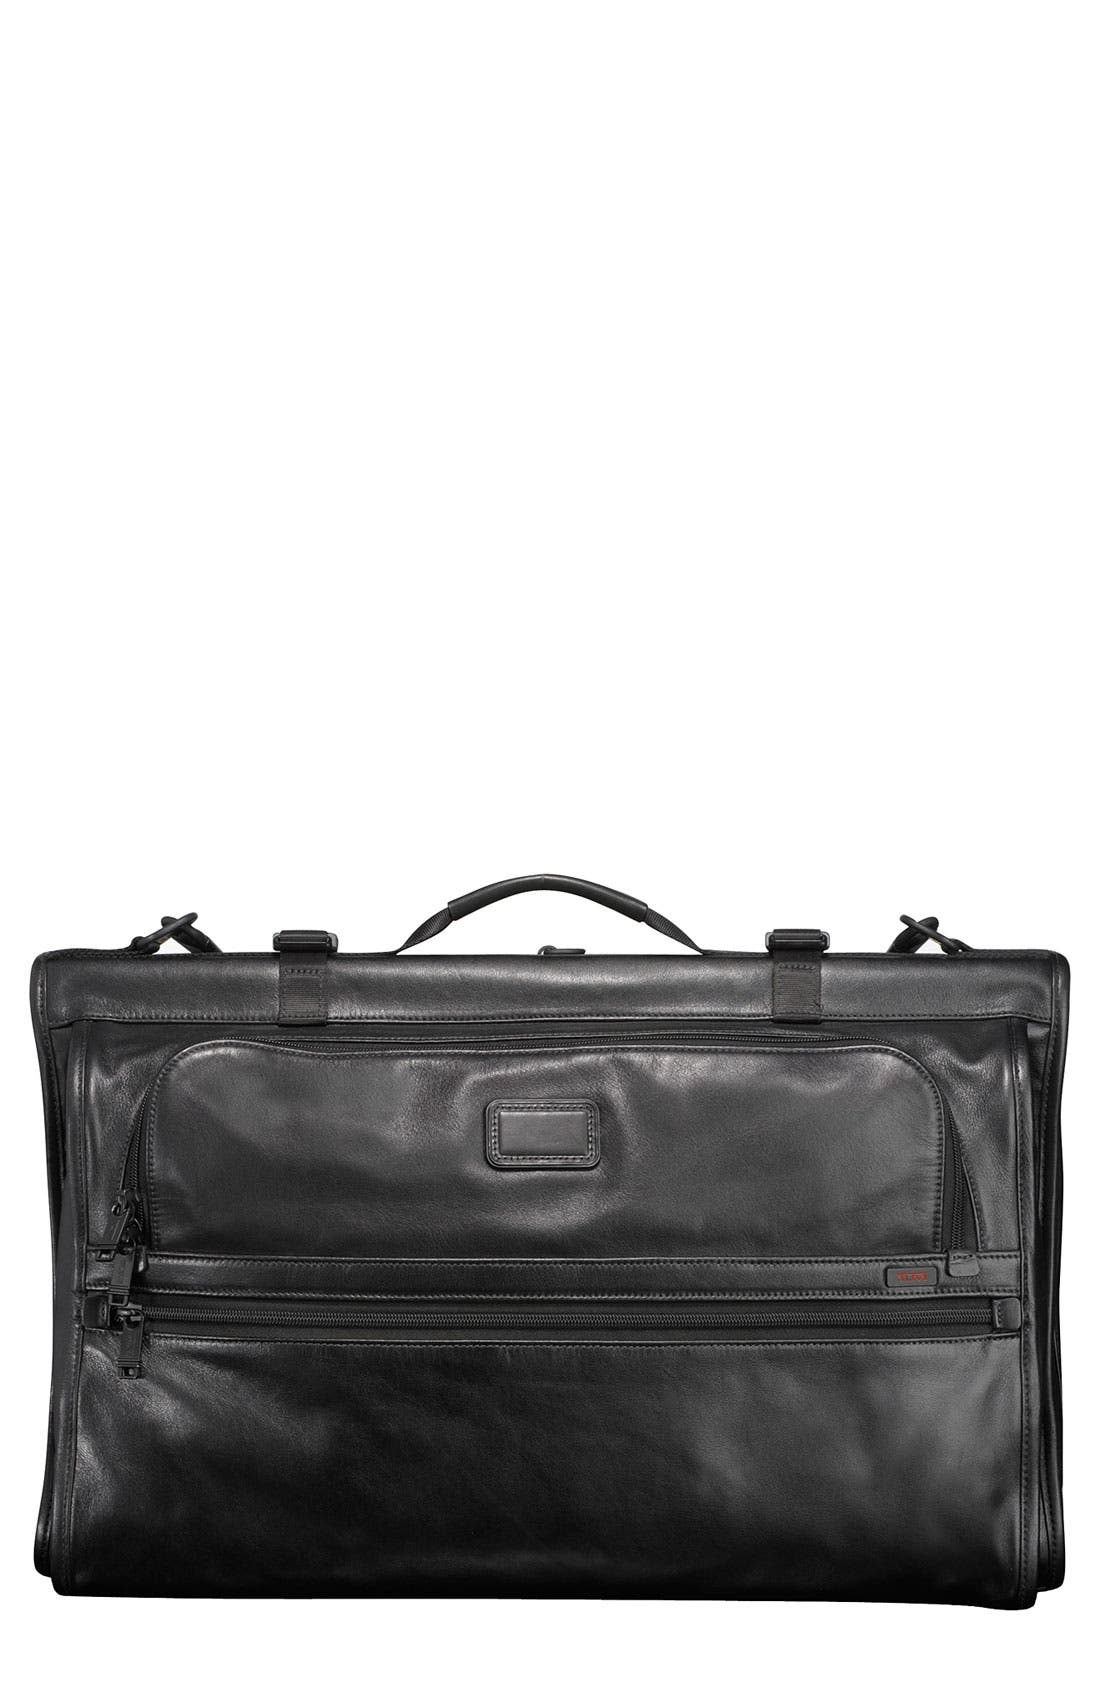 Alternate Image 1 Selected - Tumi Trifold Carry On Leather Garment Carrier